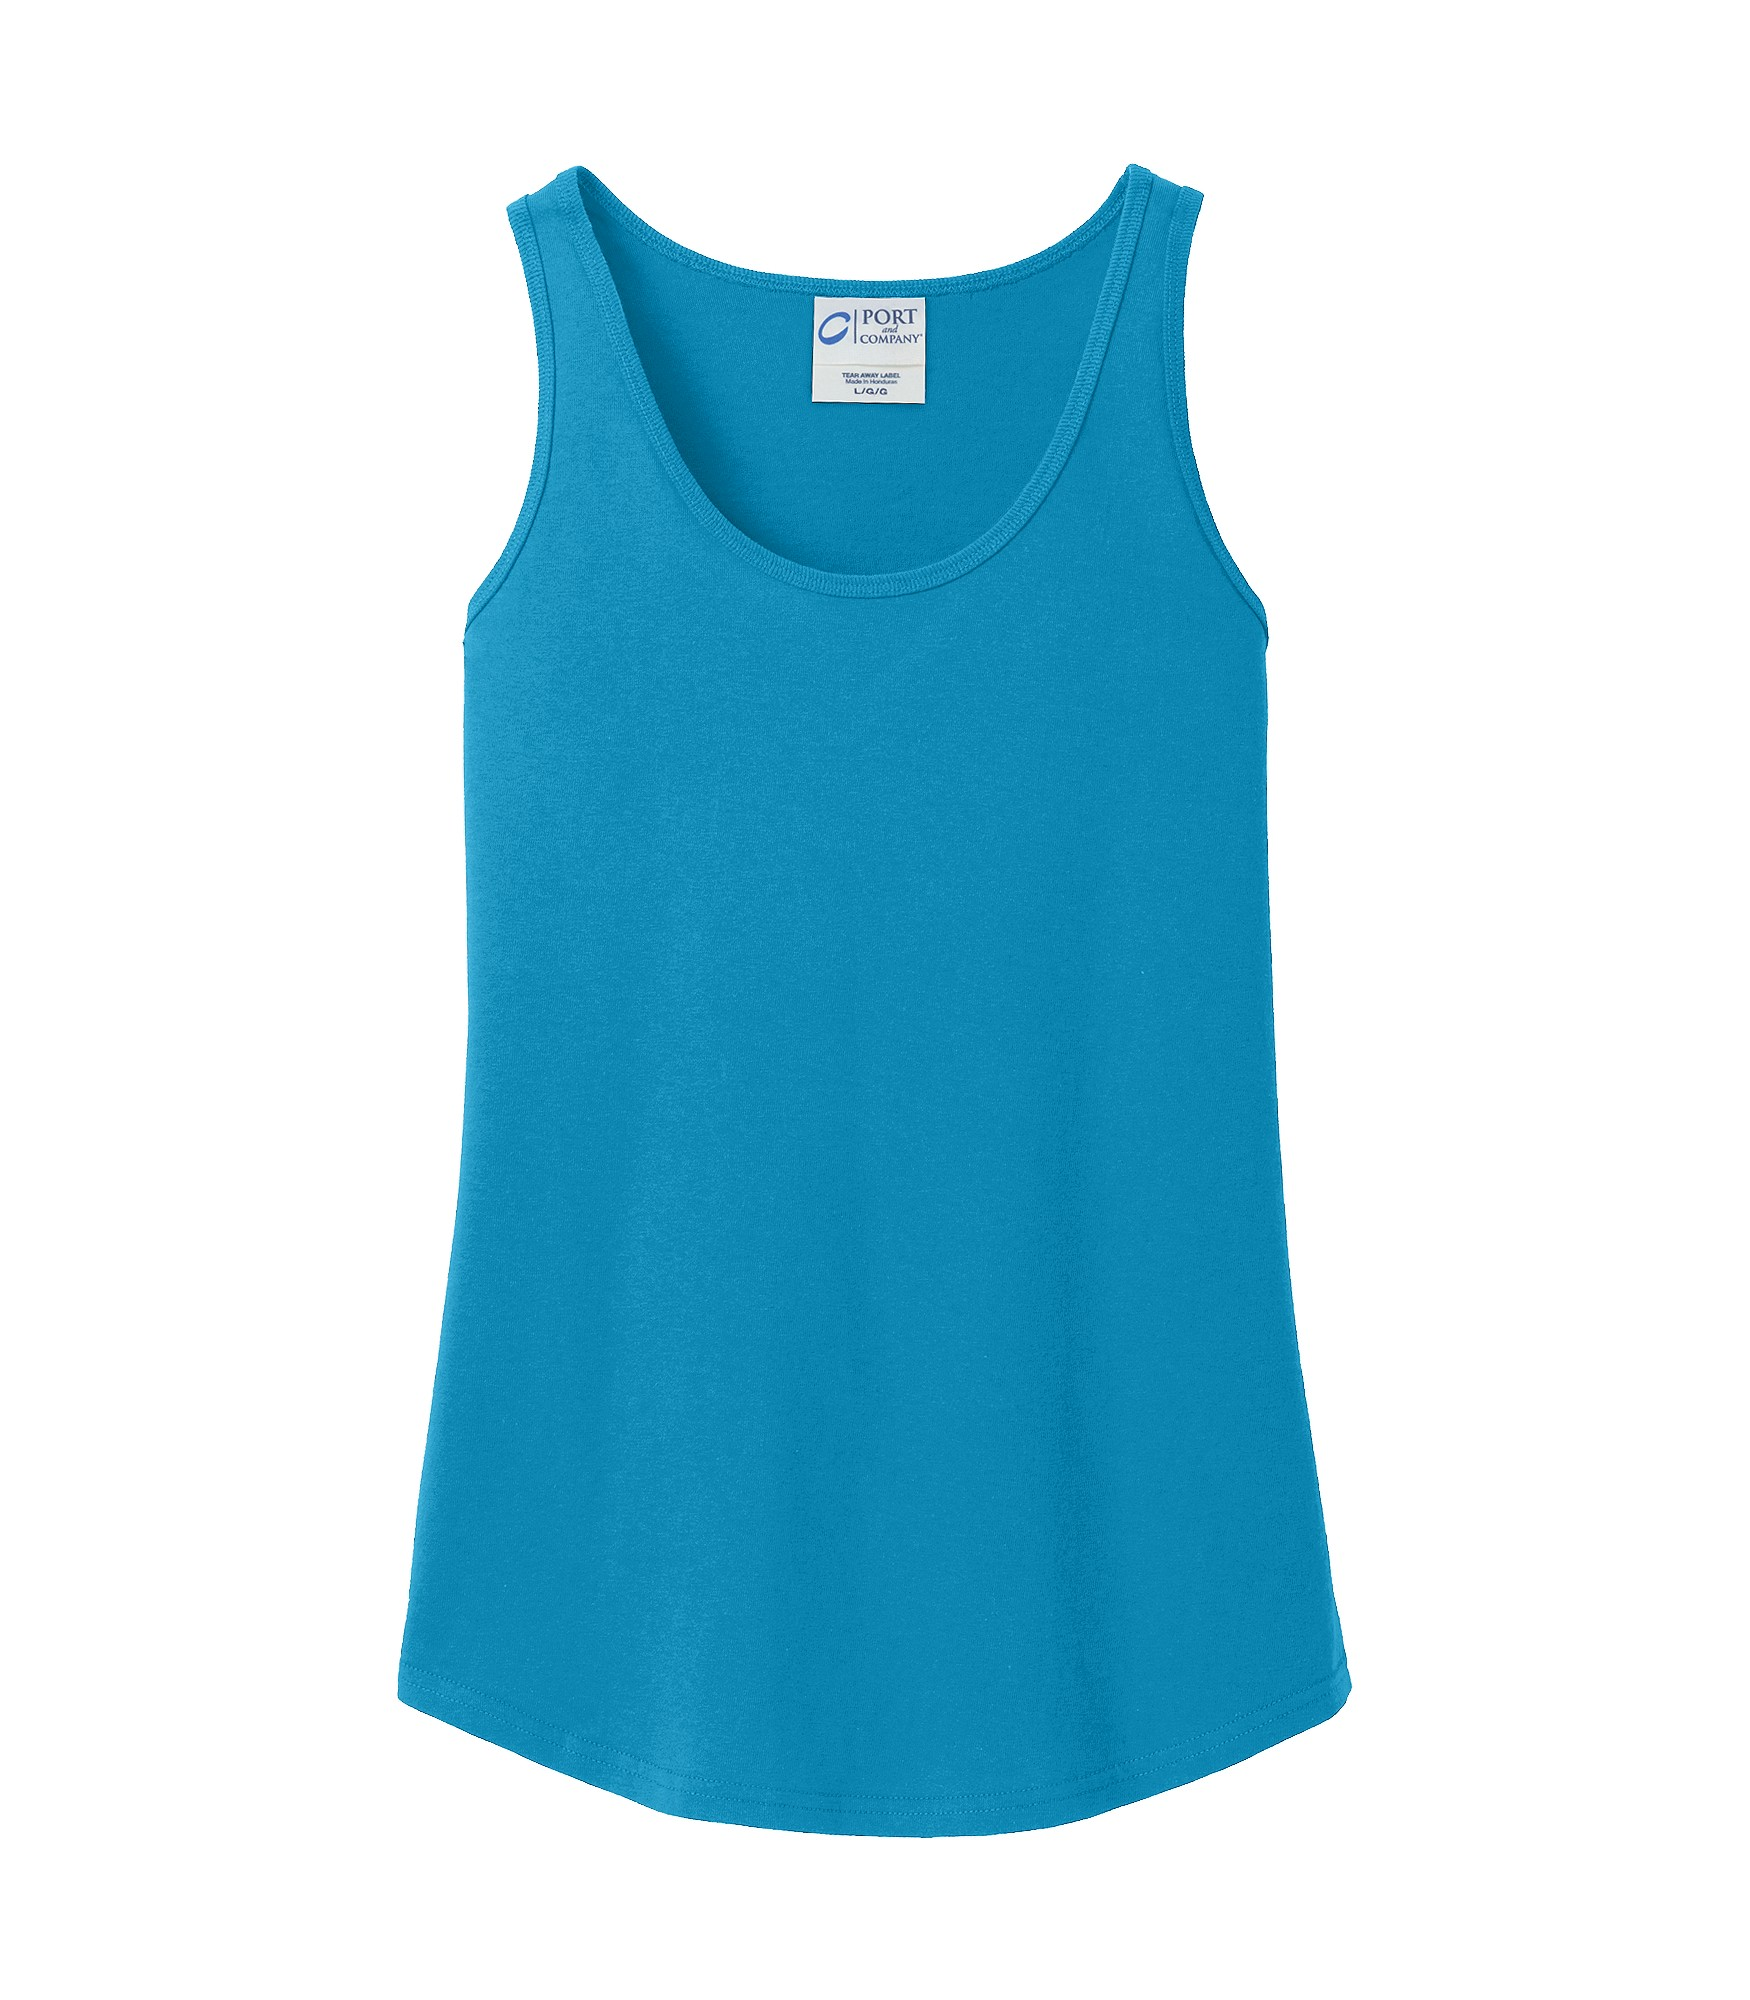 3f3397fcfe2a5 ... Port   Company® Ladies 5.4-Oz 100% Cotton Tank Top. Zoom. Loading zoom